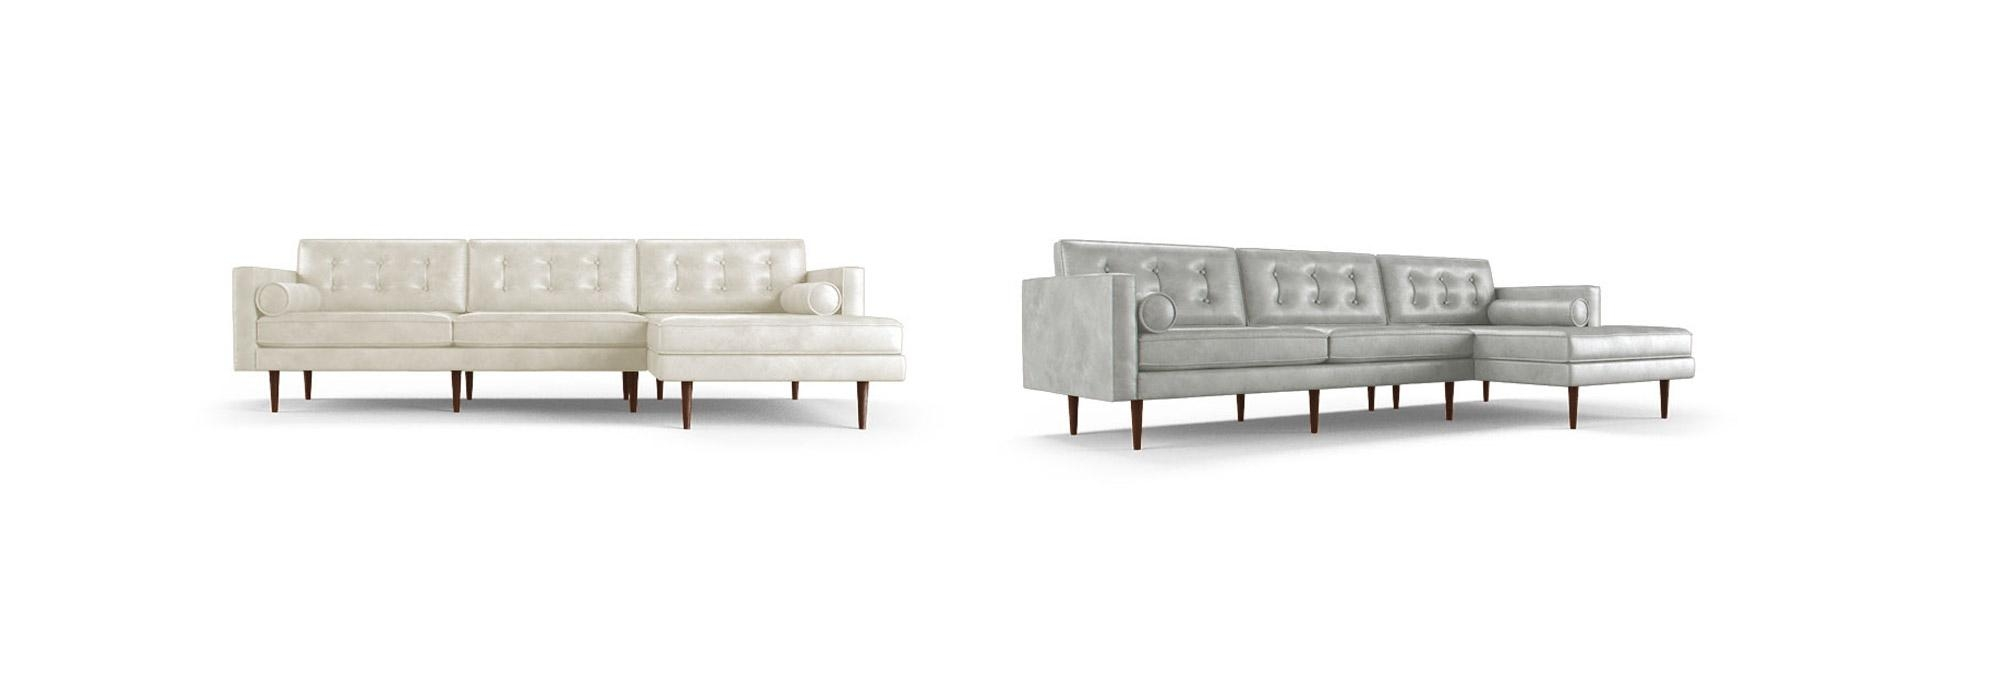 Braxton Leather Sectional | Joybird With Regard To Braxton Sectional Sofa (Image 3 of 15)